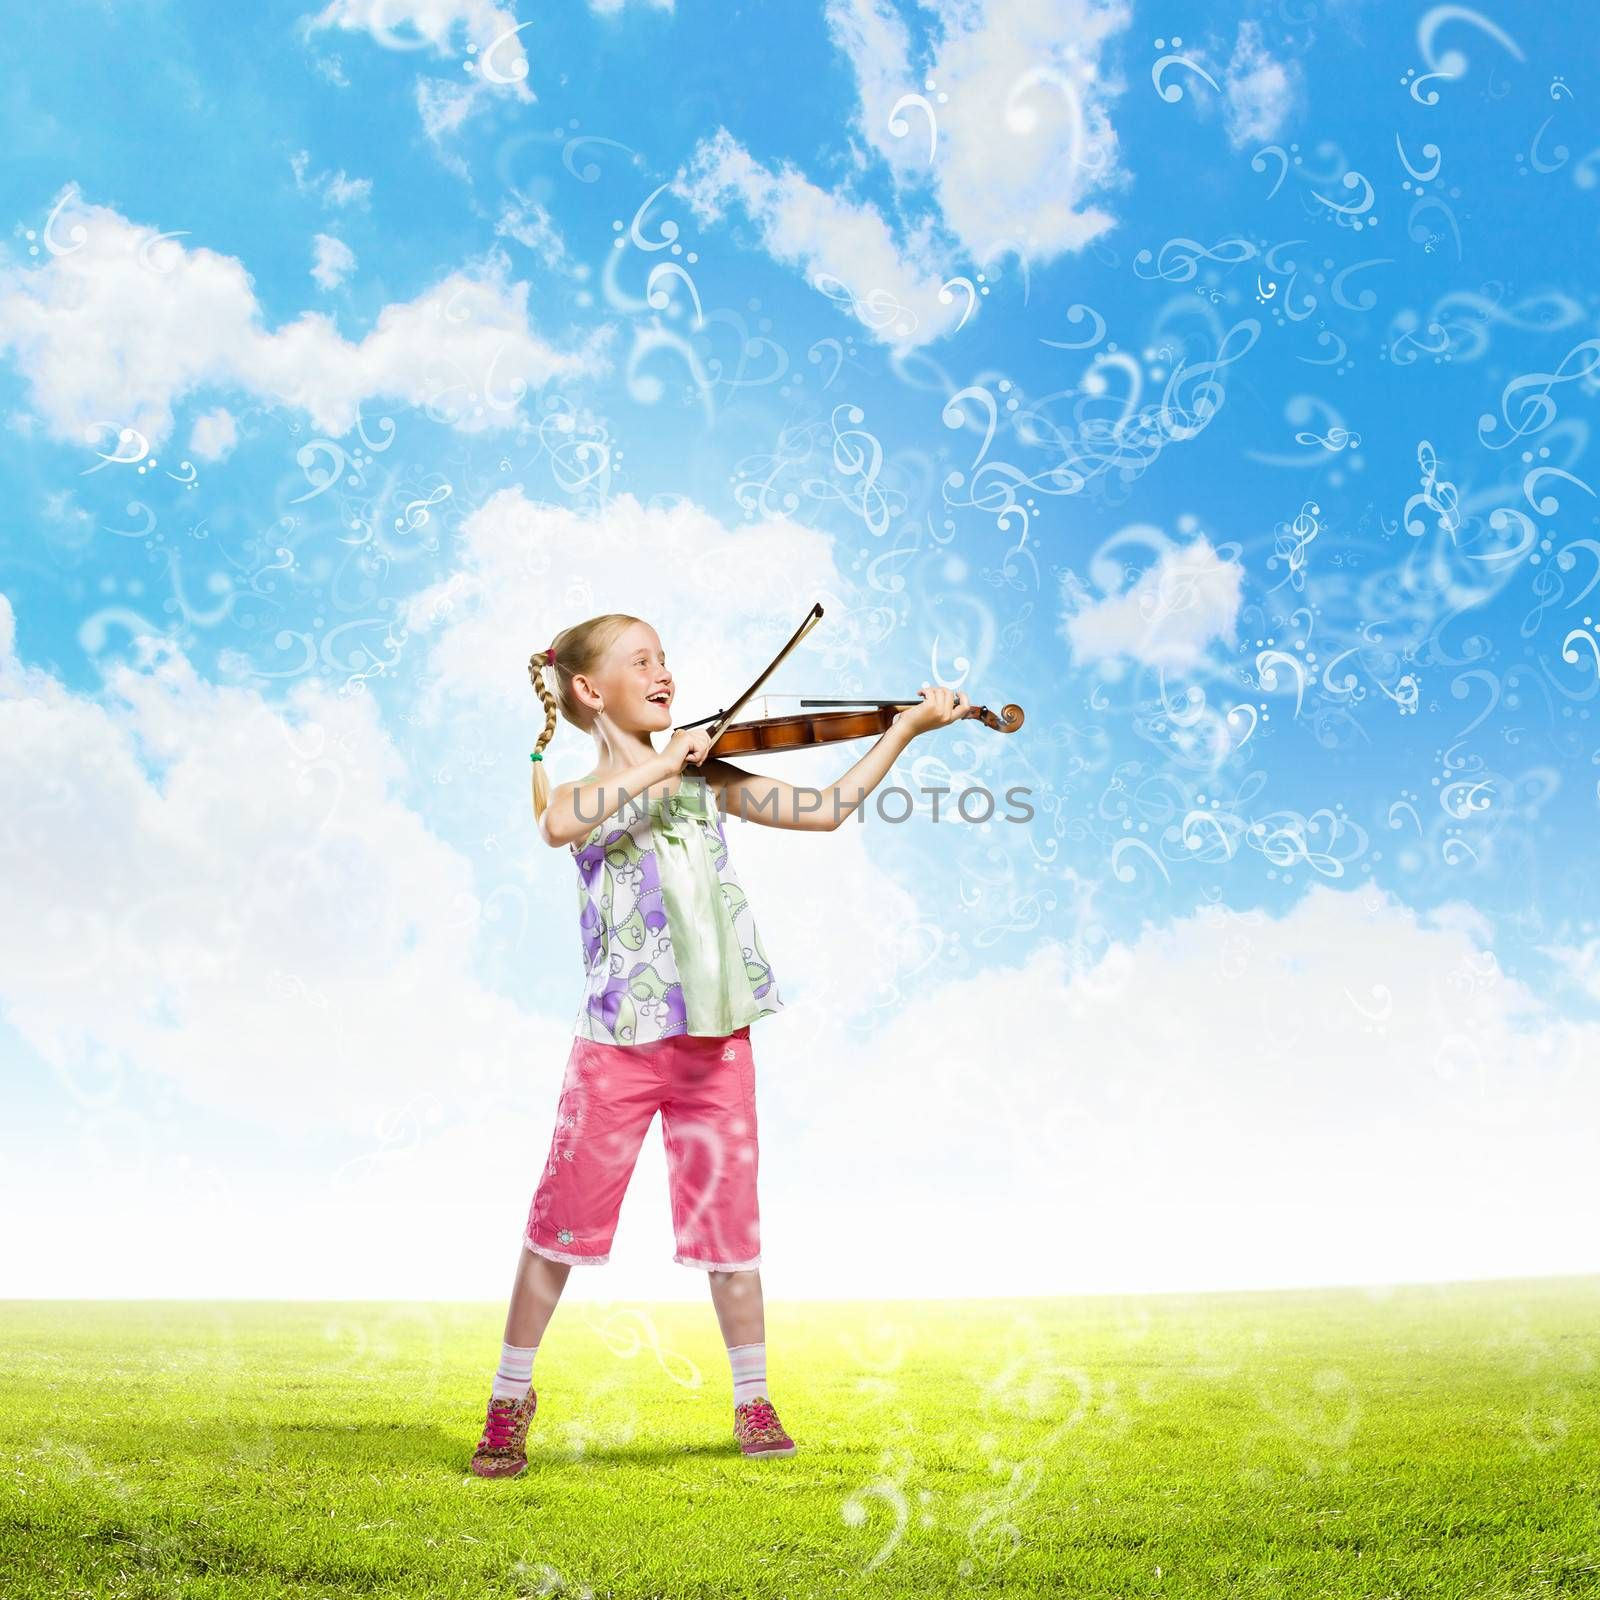 Image of cute girl playing violin outdoors